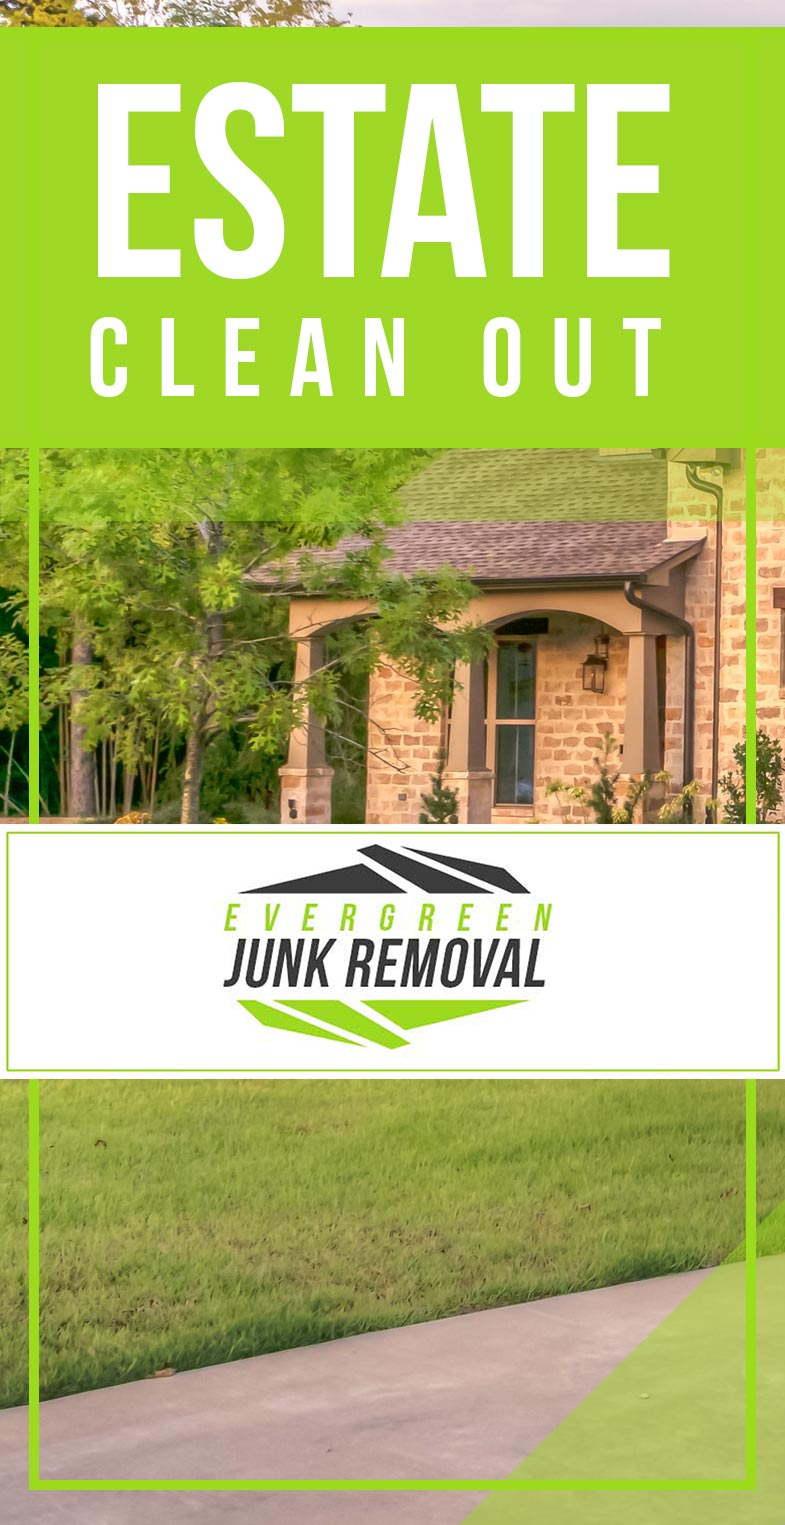 San Clemente Property Clean Out